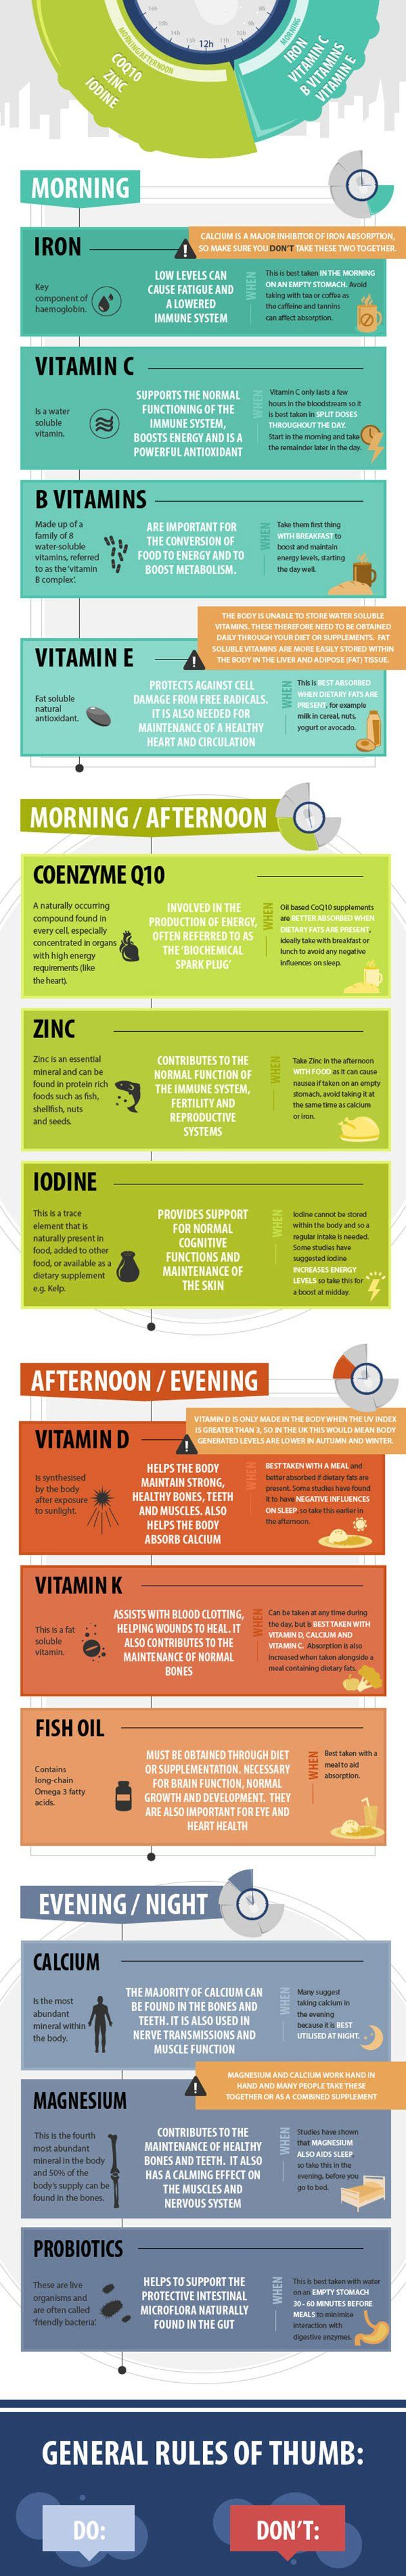 A Guide To Optimising Your Vitamins And Supplements Infographic